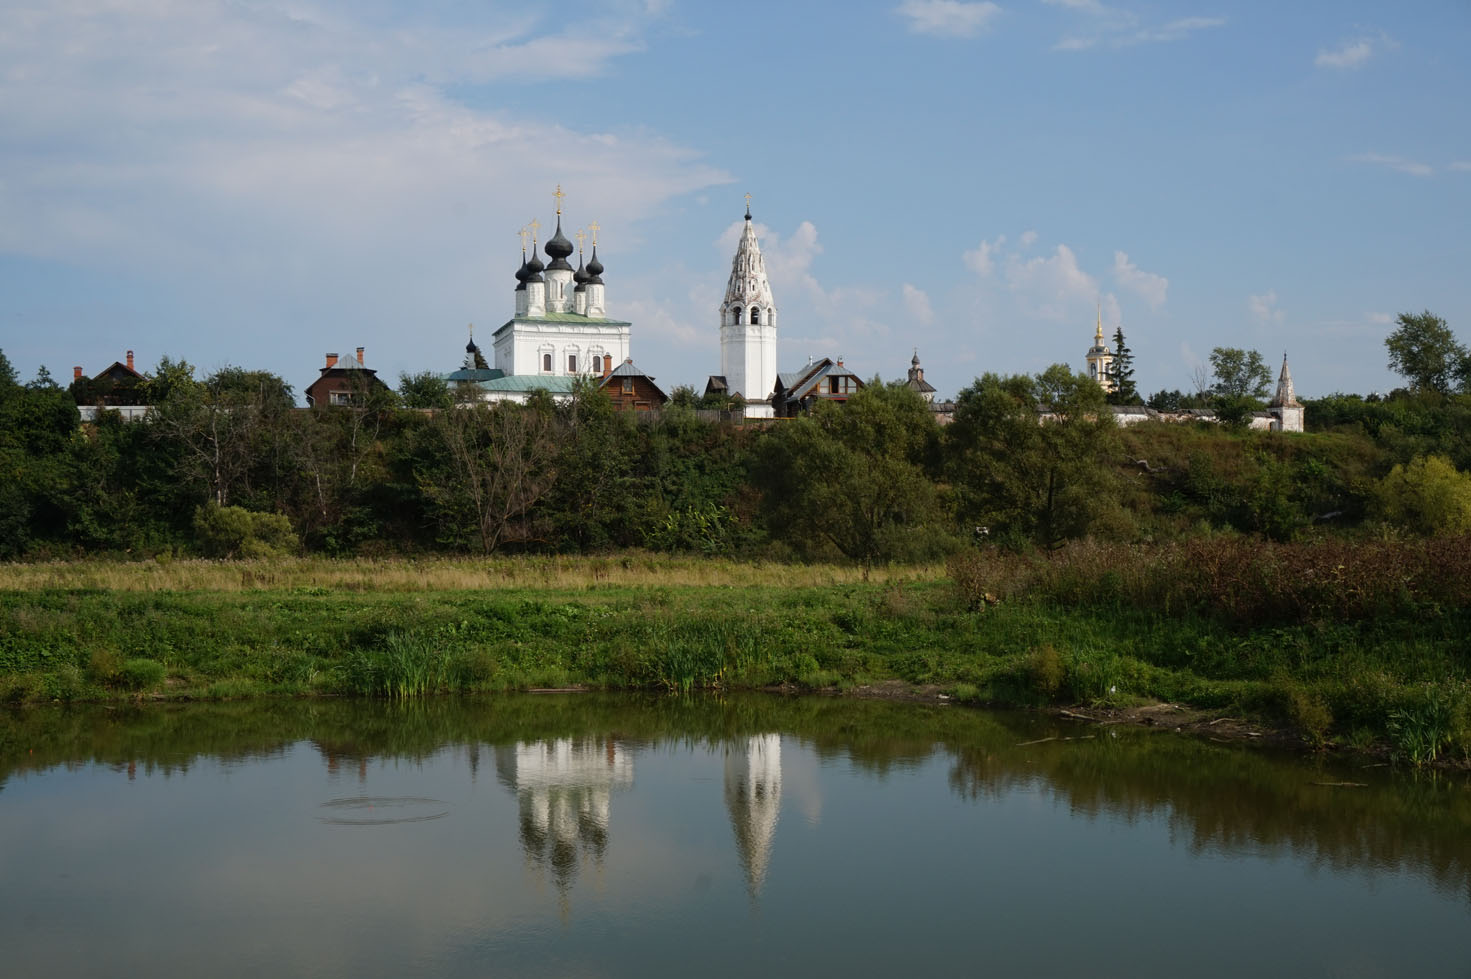 Alexandrovsky Convent in Suzdal